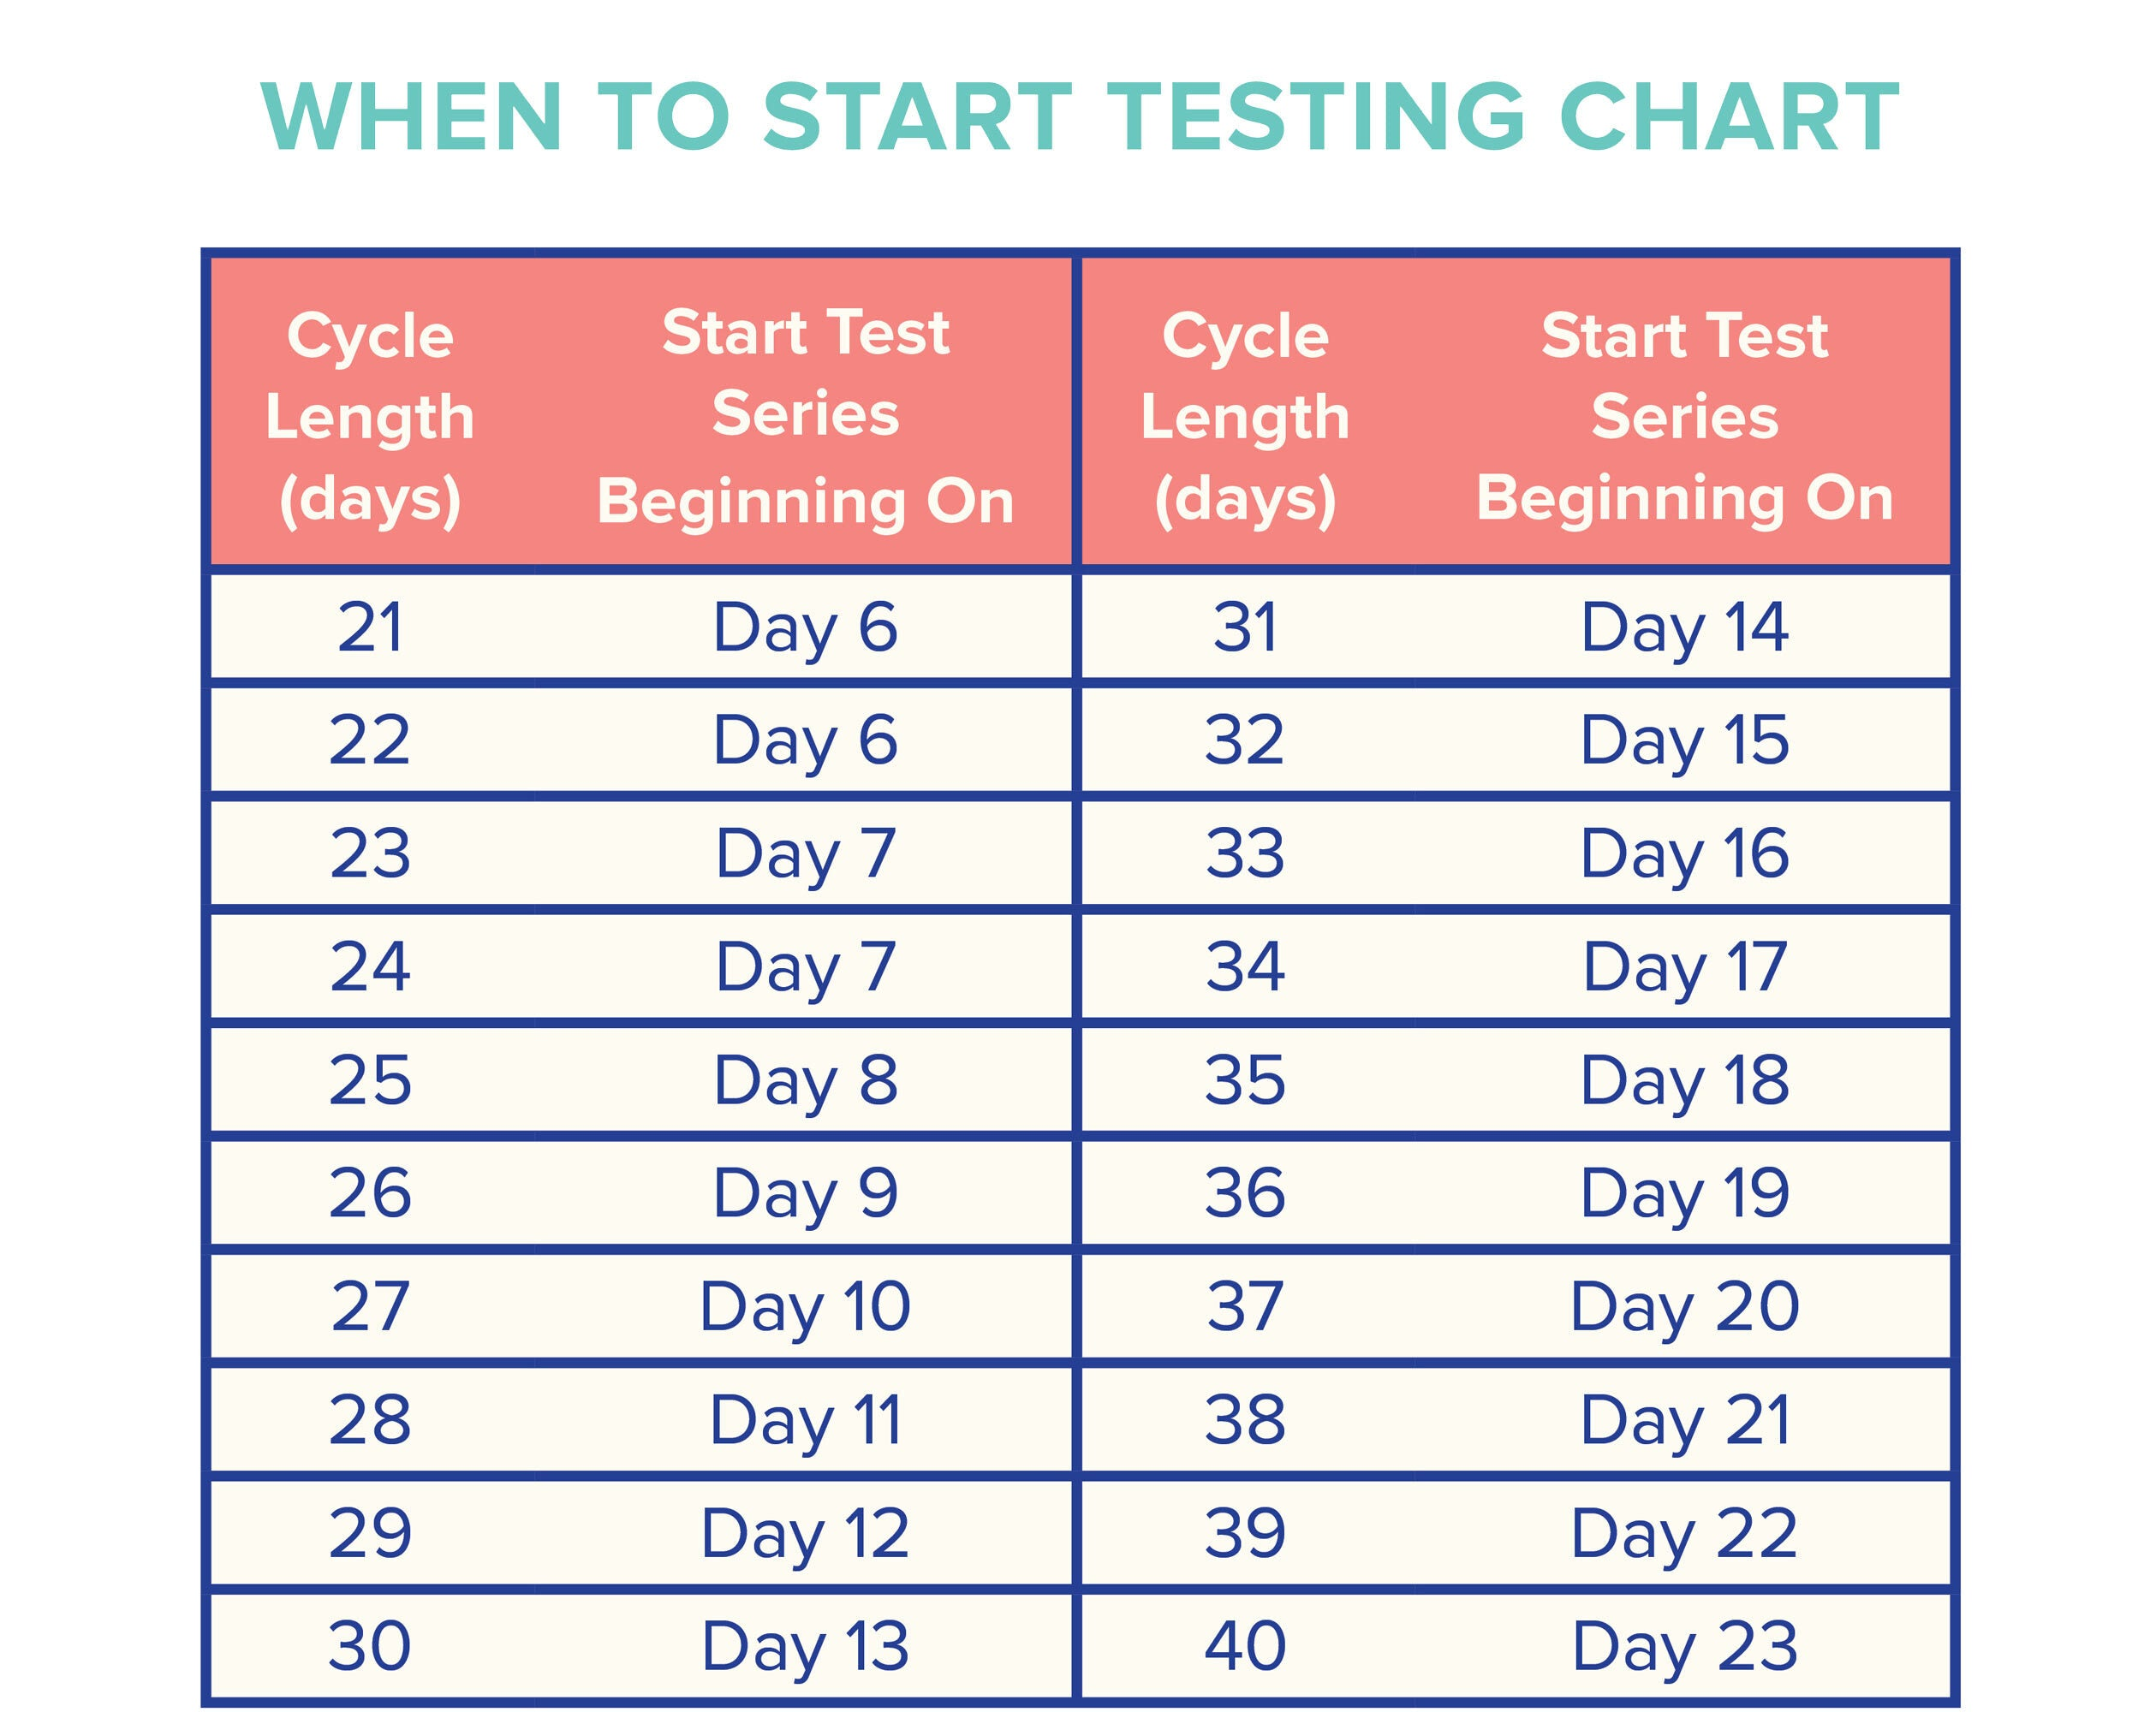 When to start testing with ovulation predictor kits